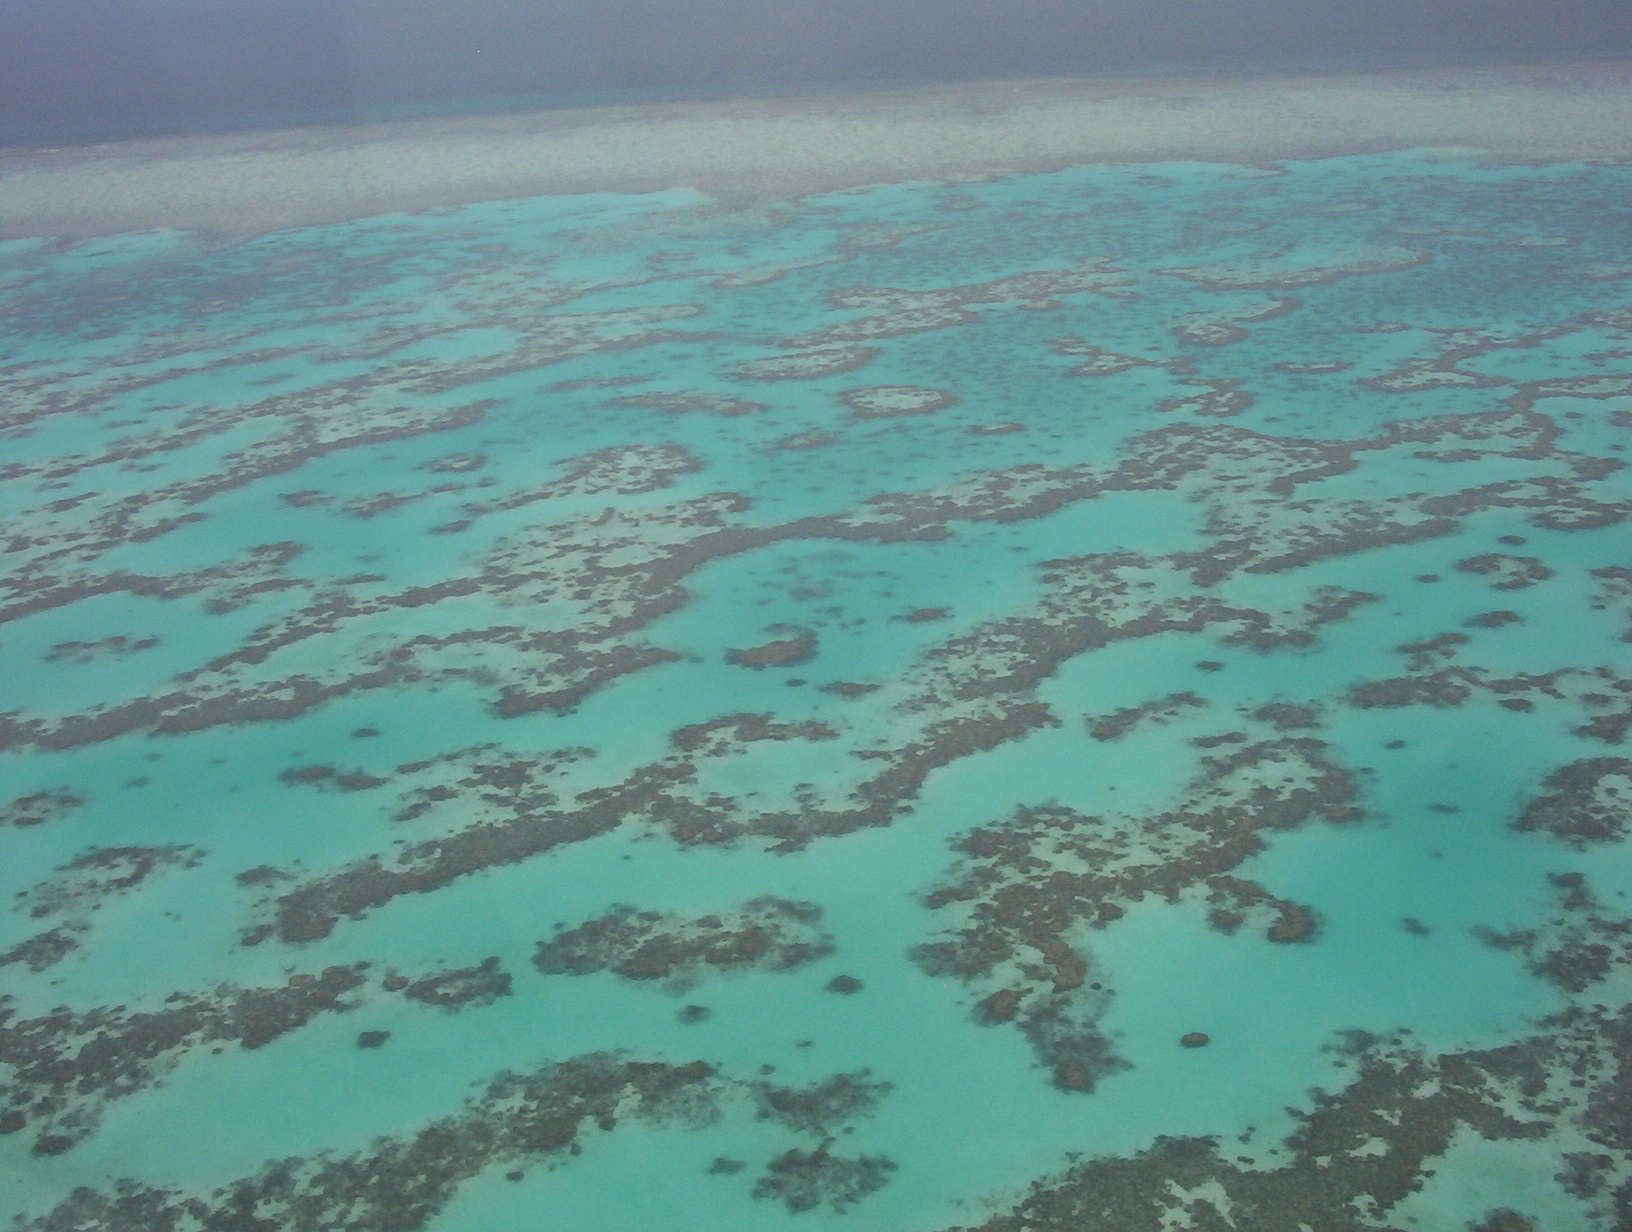 part_of_great_barrier_reef_from_helecopter.jpg